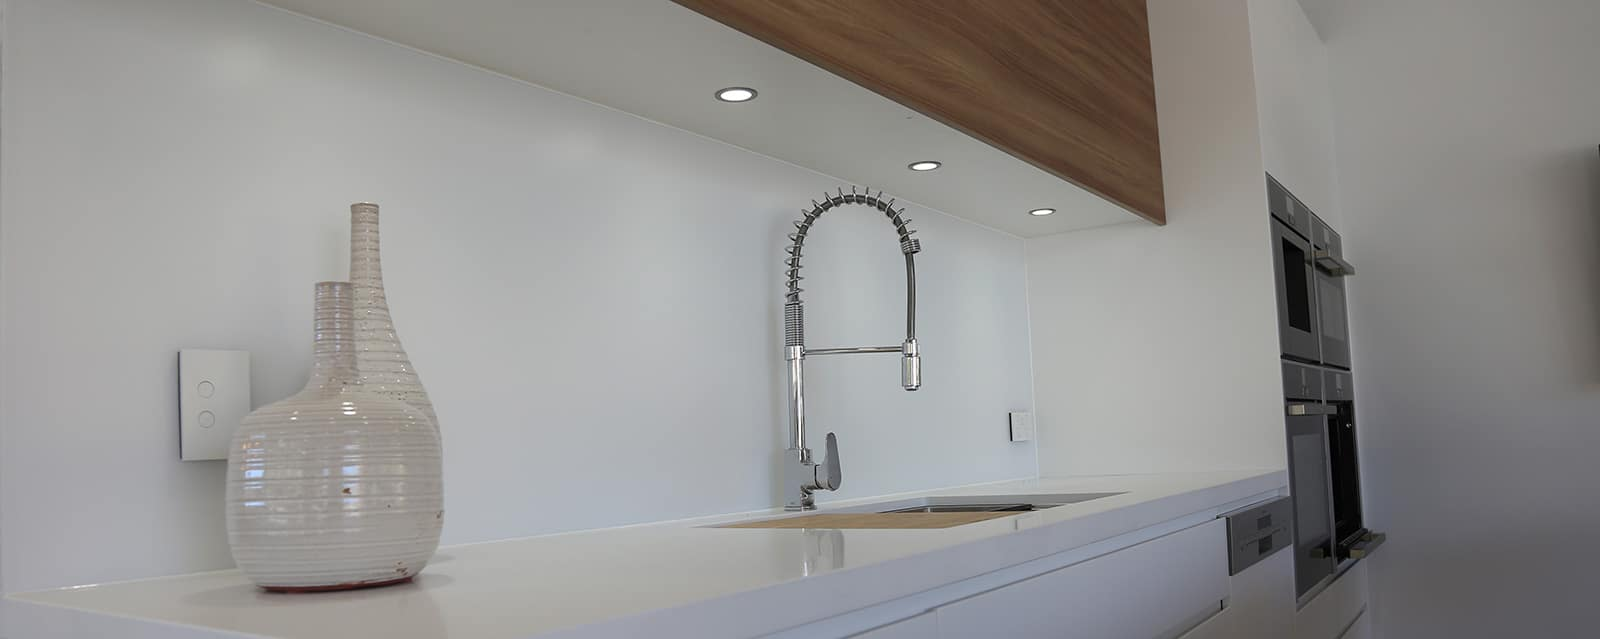 Matte Glass Splashback